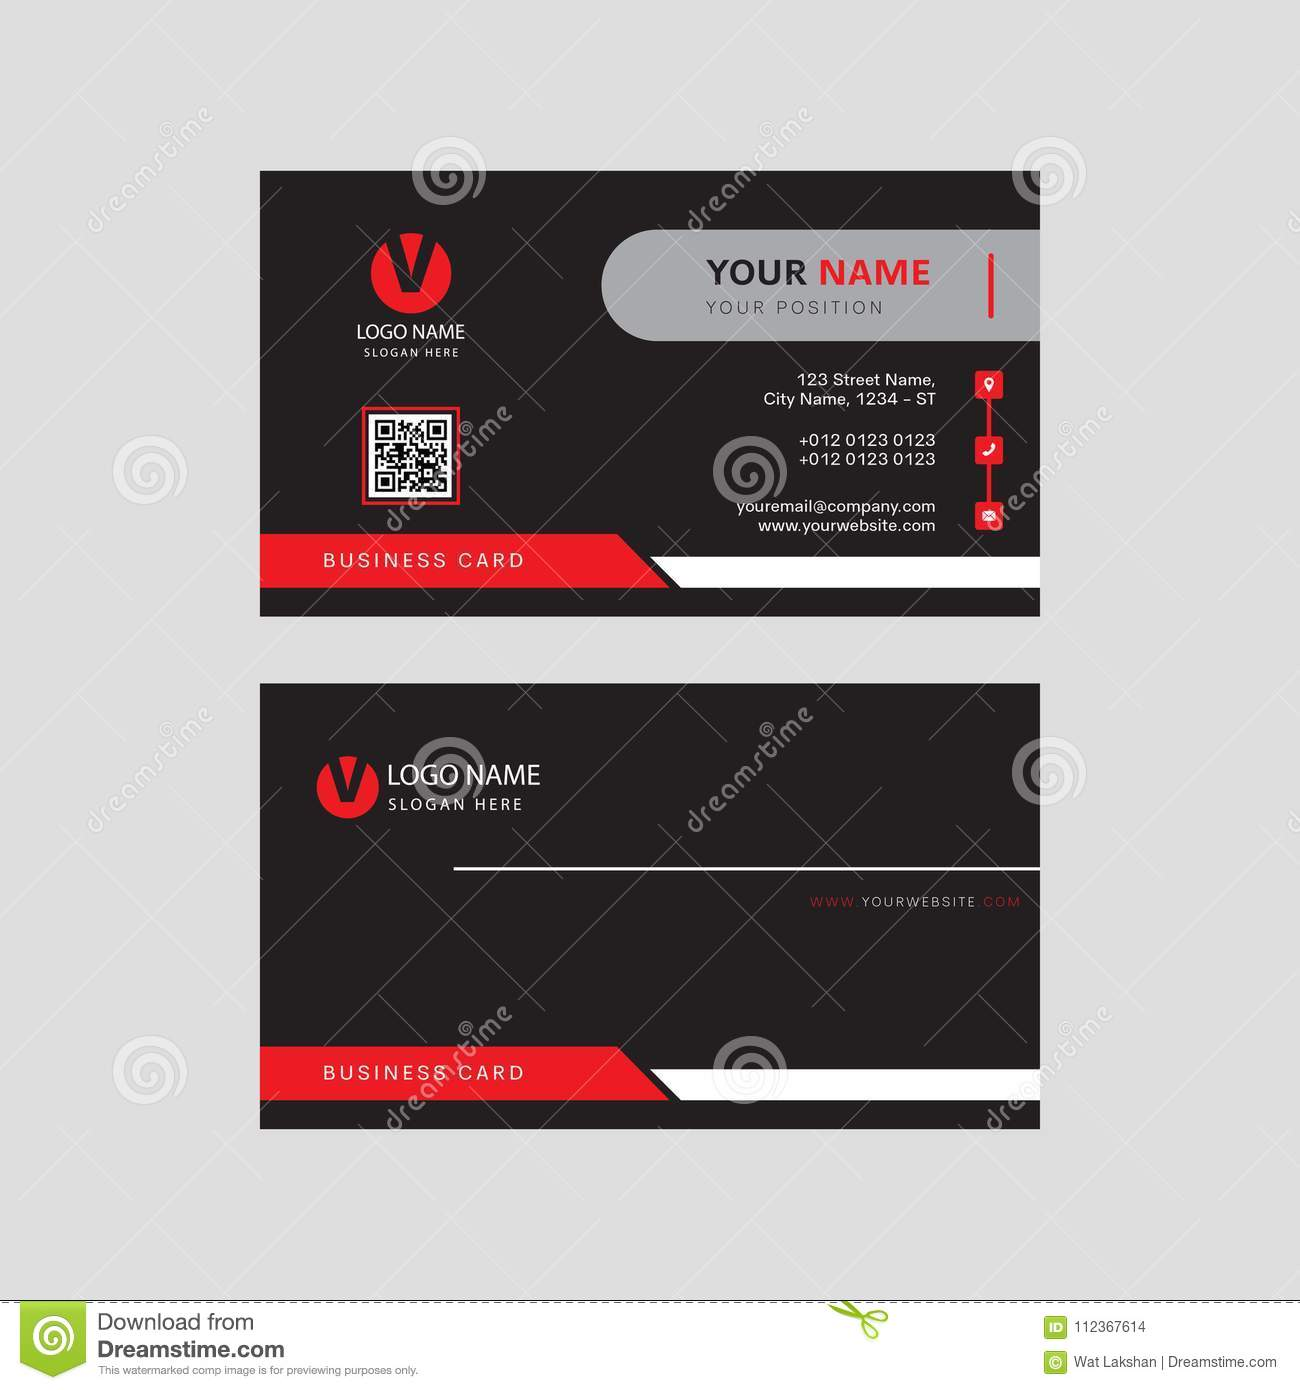 Modern Professional Eye Catching Business Card Design Visiting Card